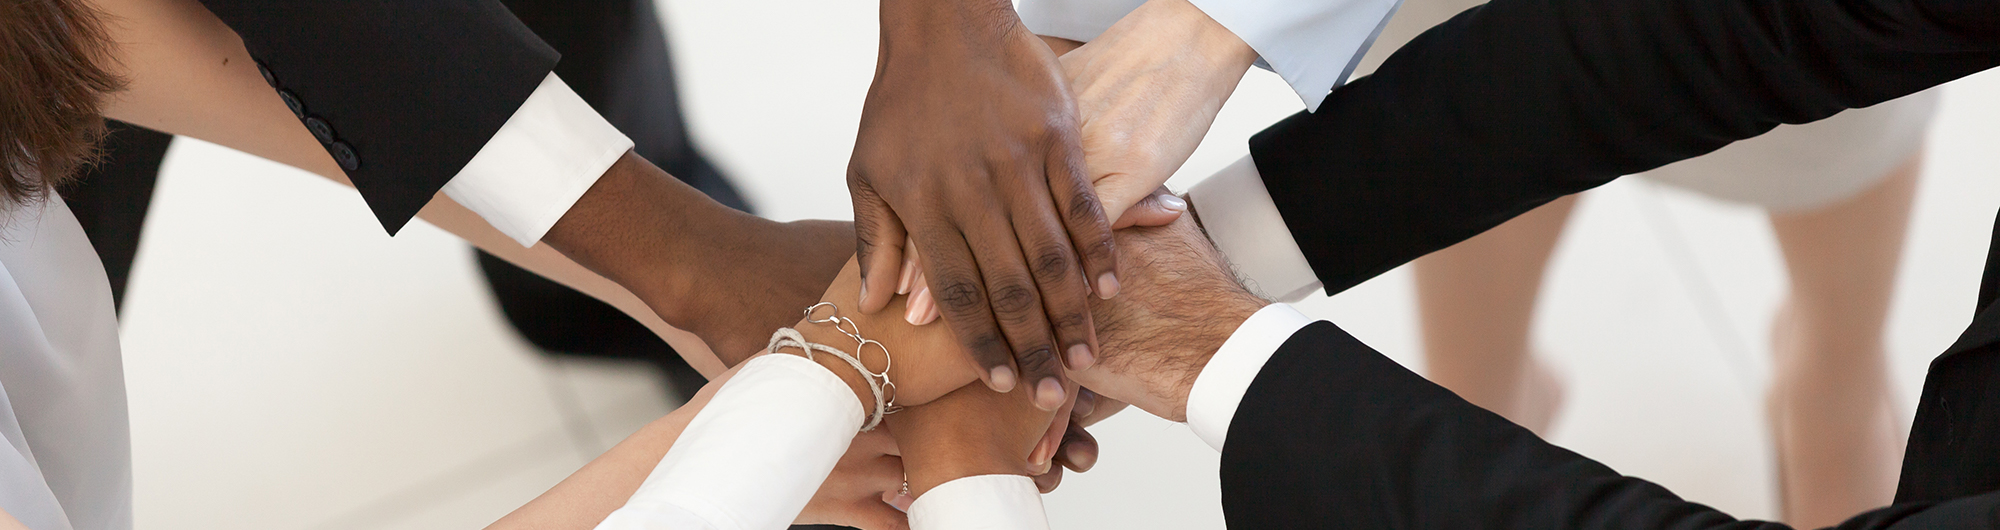 people of various races clasping hands to show diversity